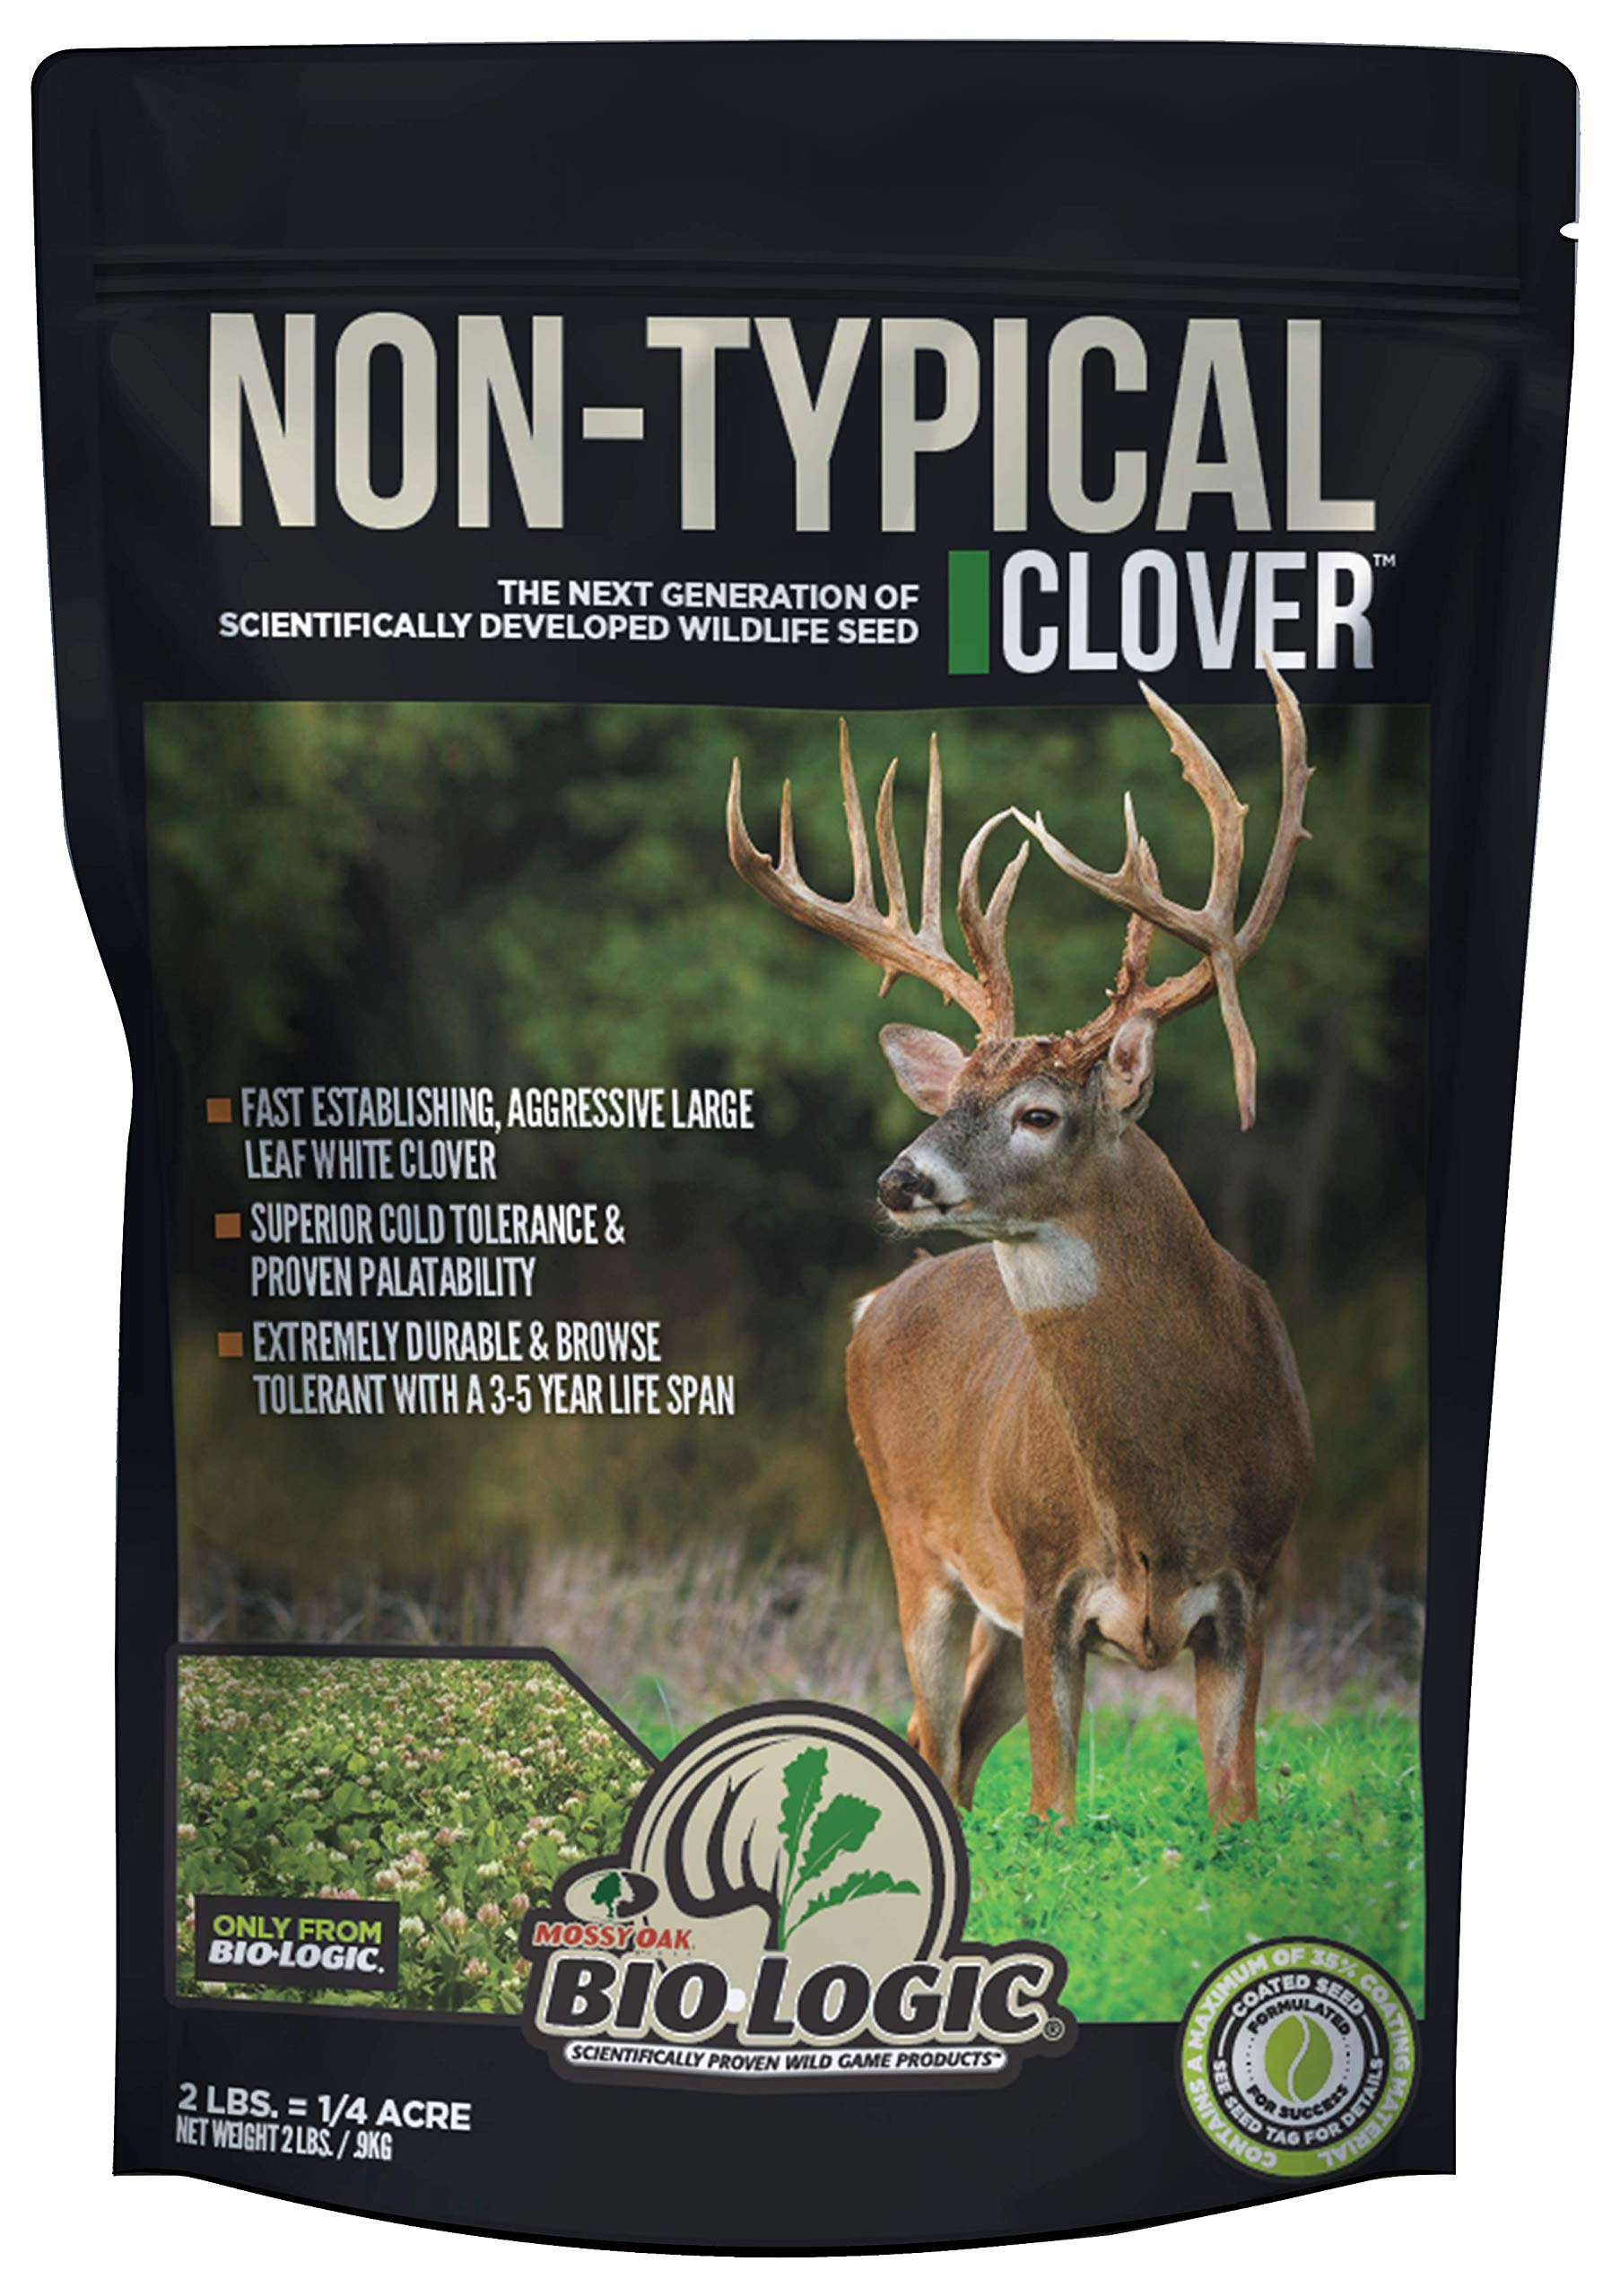 BioLogic Non-Typical Clover Food Plot Seed for Deer by BioLogic